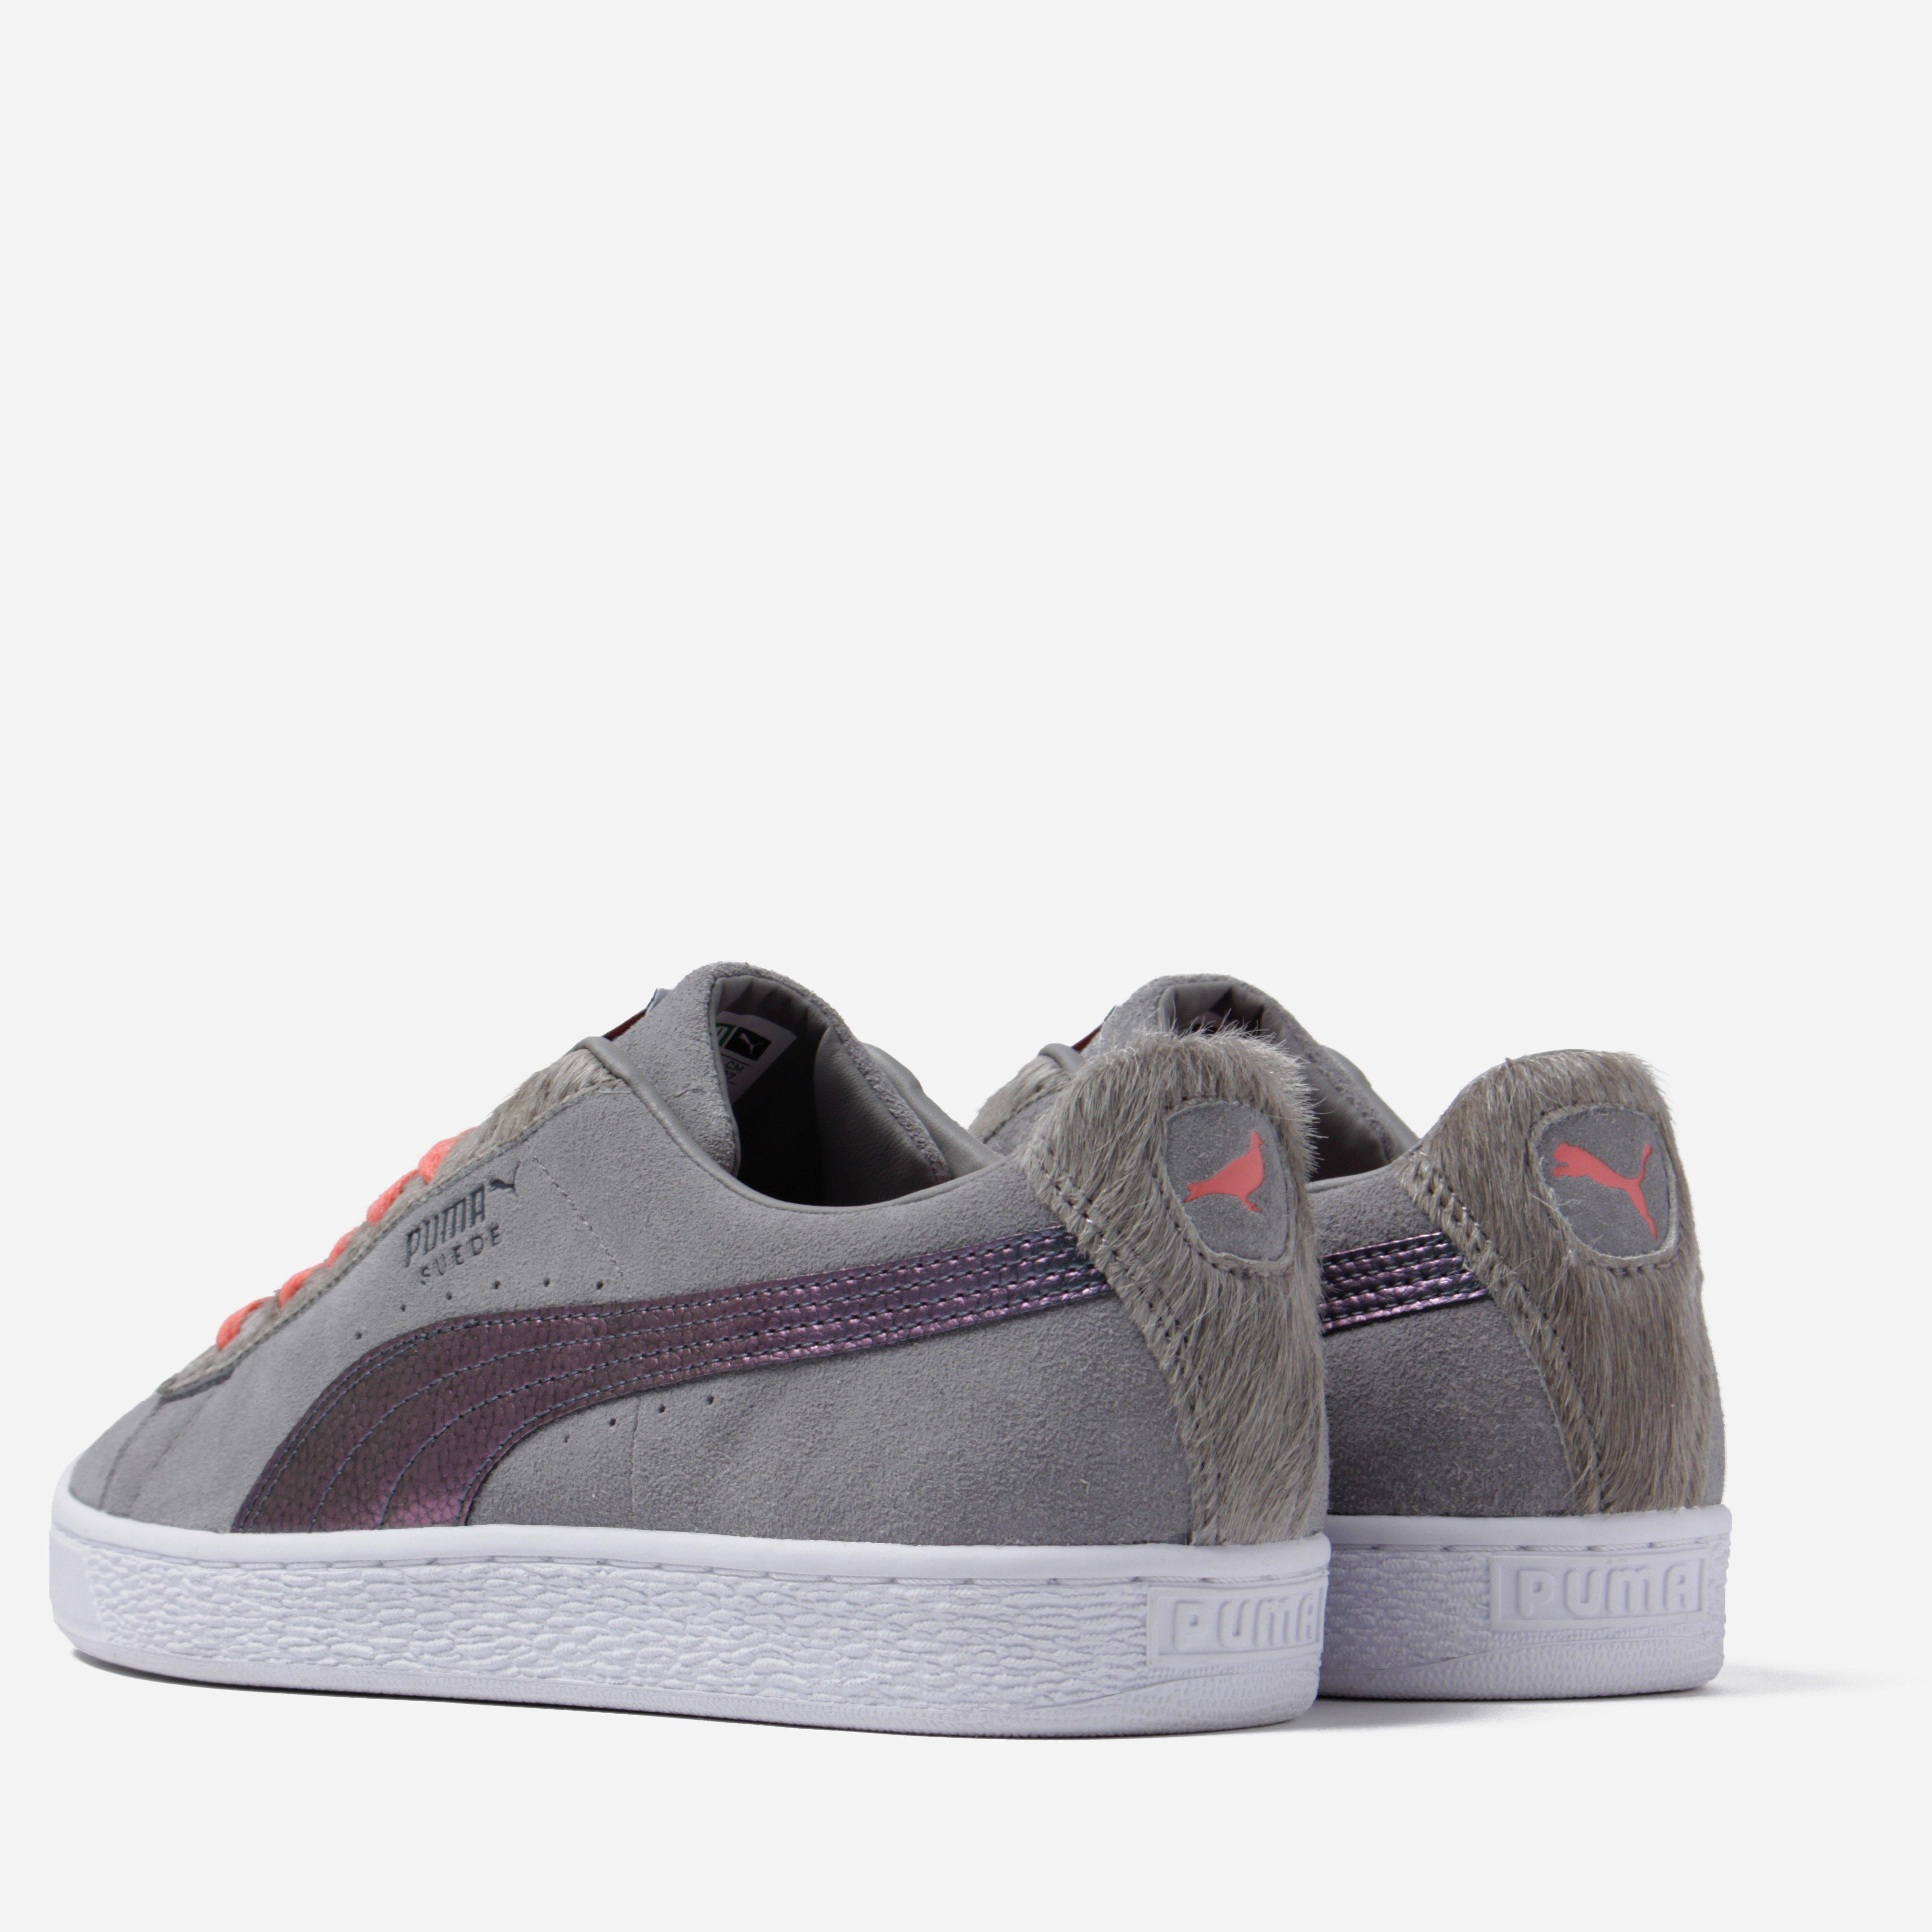 233c971dfd26 Lyst - PUMA Suede Classic X Staple Pigeon in Gray for Men